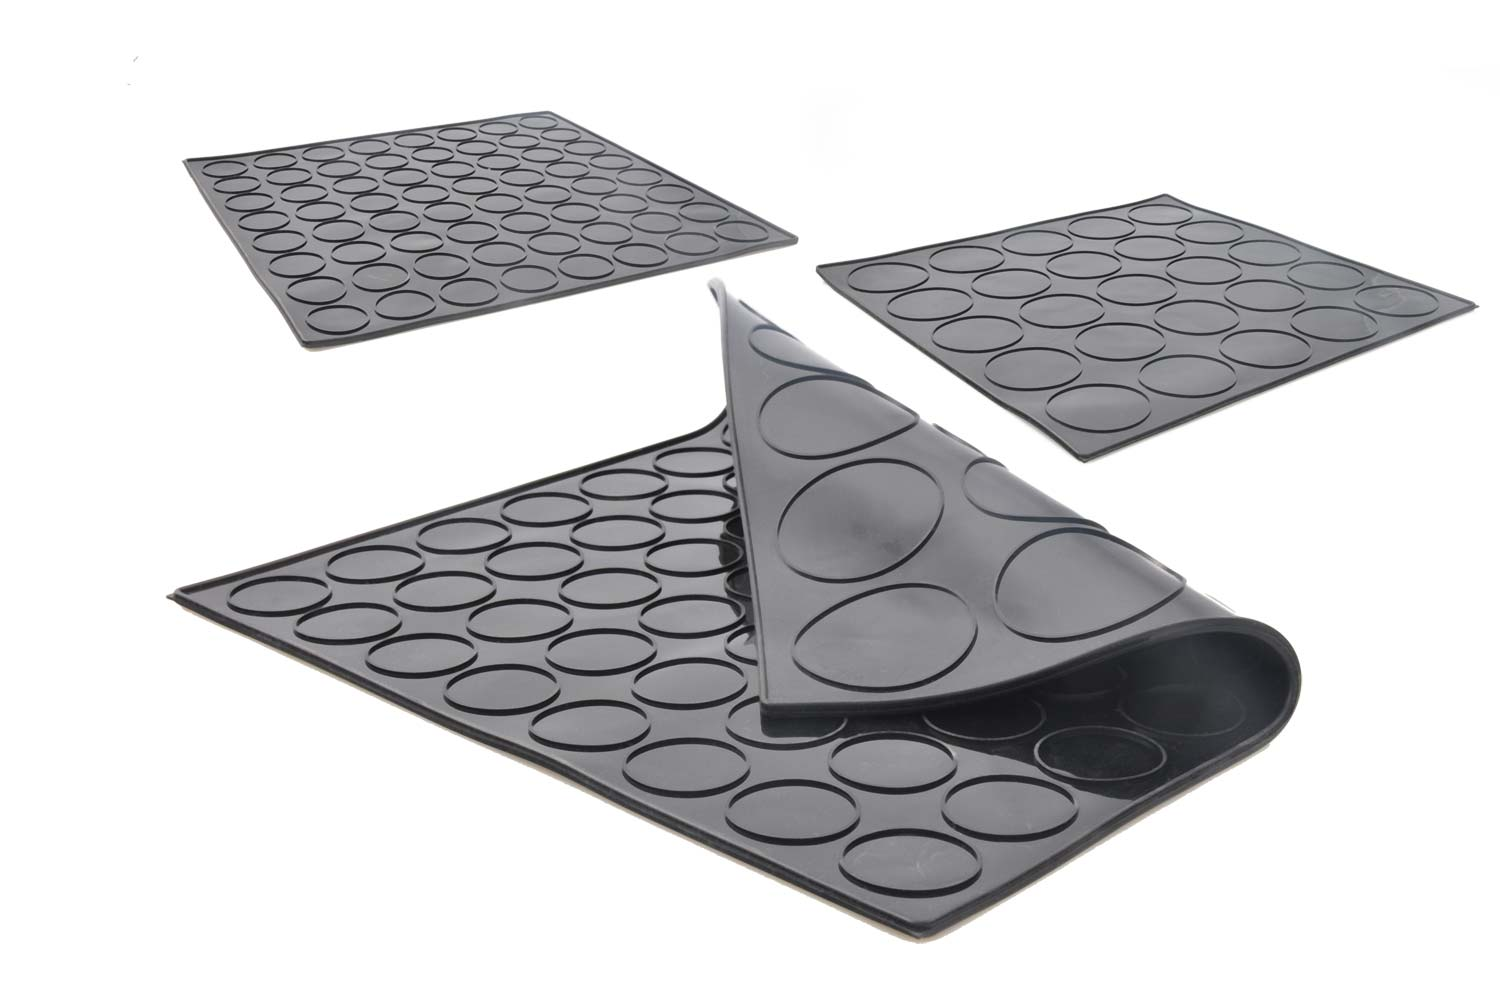 uk silicone silicon nr dish mint brabantia drying mats mat